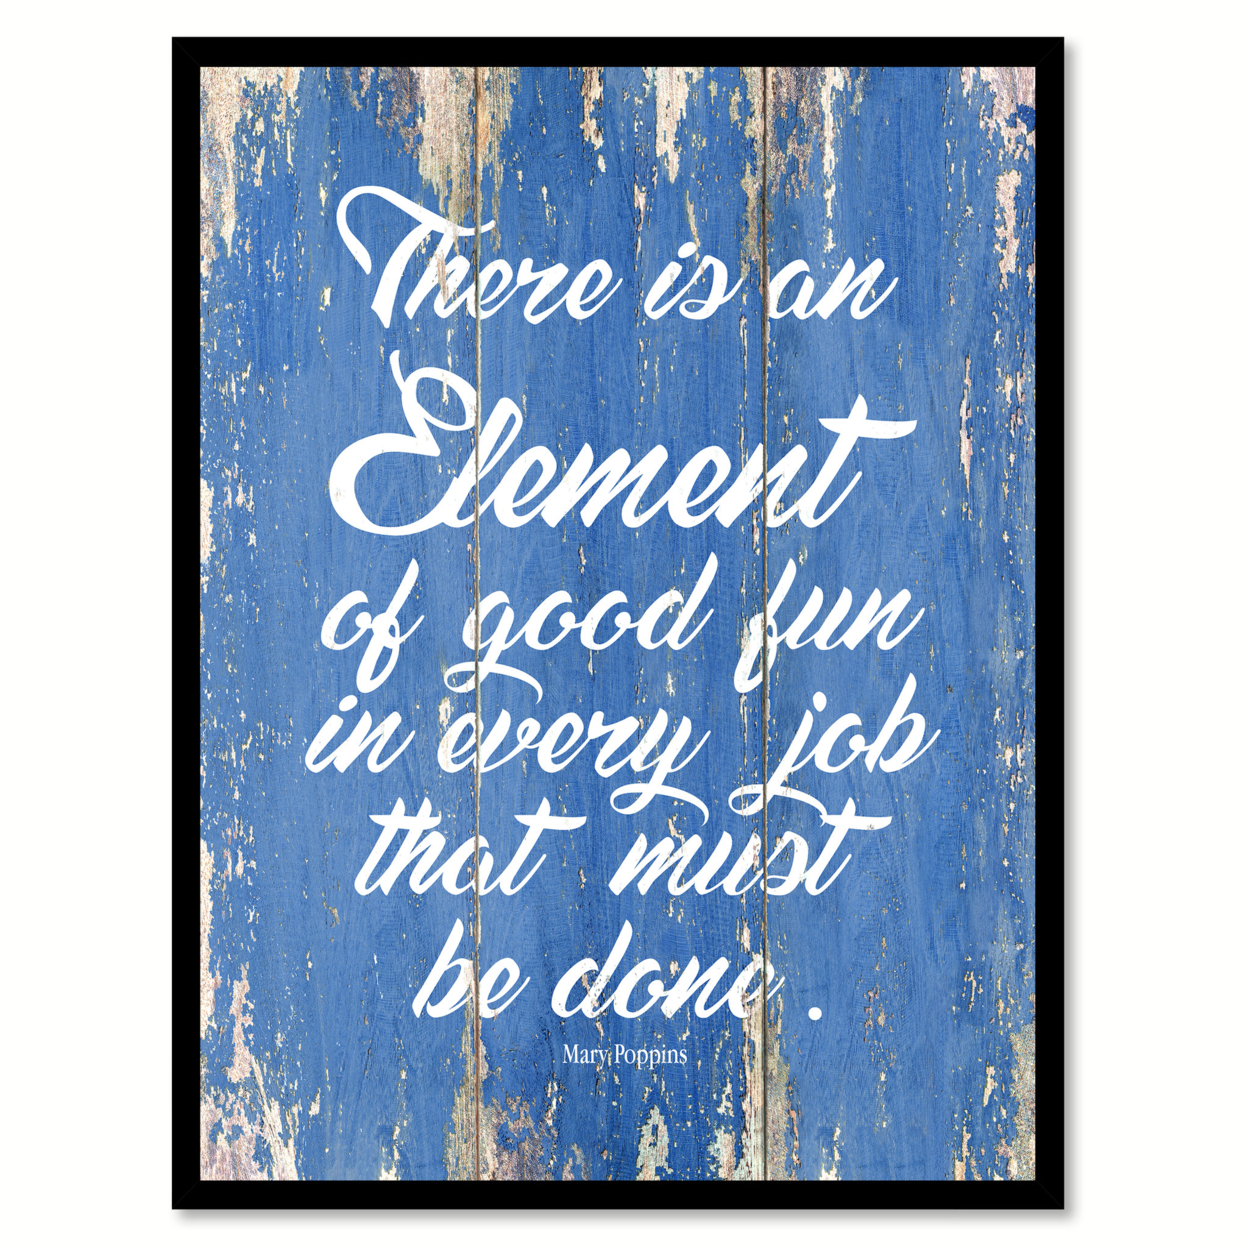 There Is An Element Of Good Fun In Every Job That Must Be Done Print With Picture Frame Home Decor Wall Art Gifts